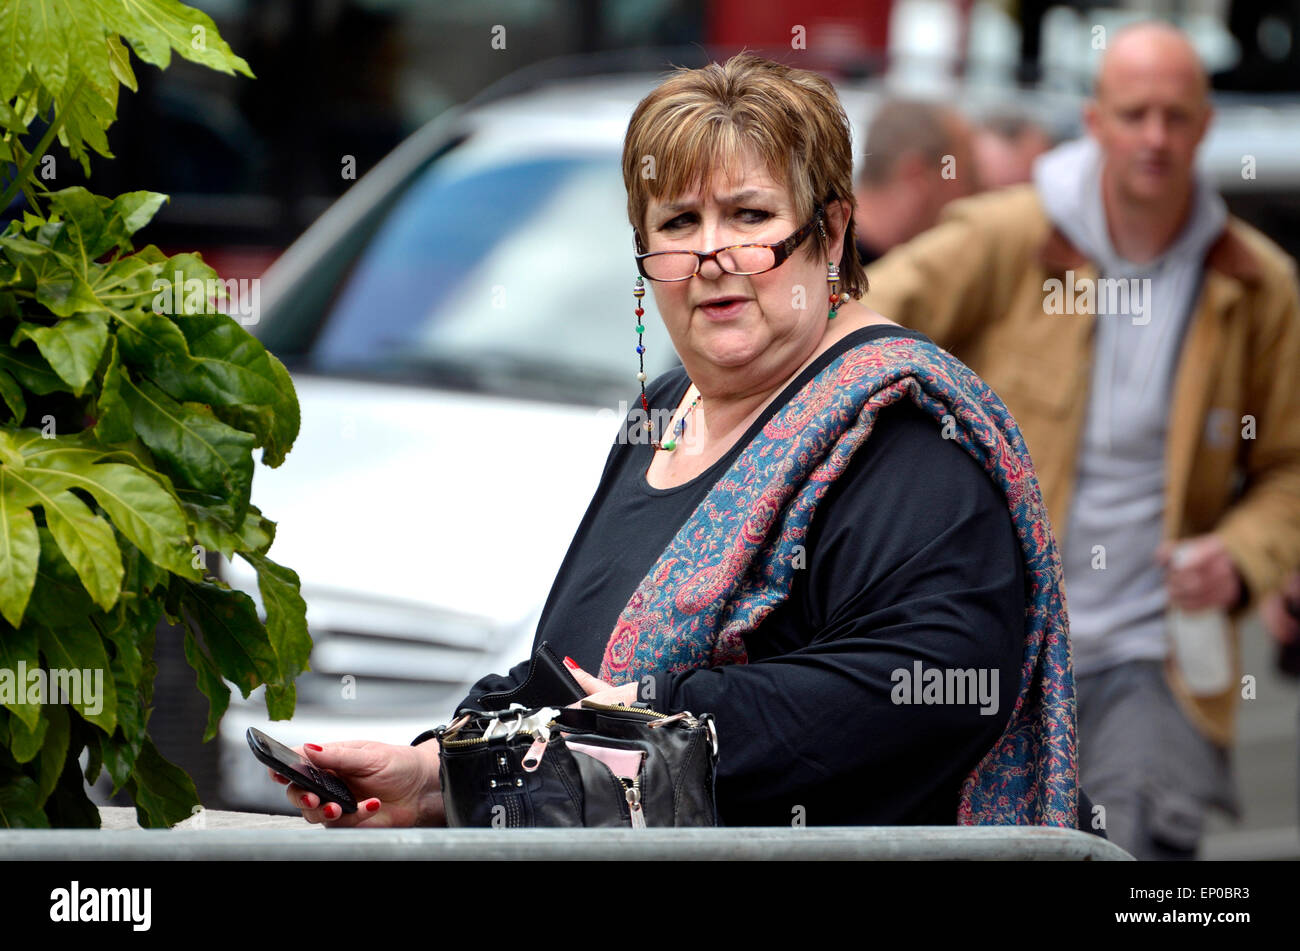 Jenni Murray, DBE. BBC Radio journalist and broadcaster, presenter of Radio 4's Woman's Hour, outside BBC - Stock Image